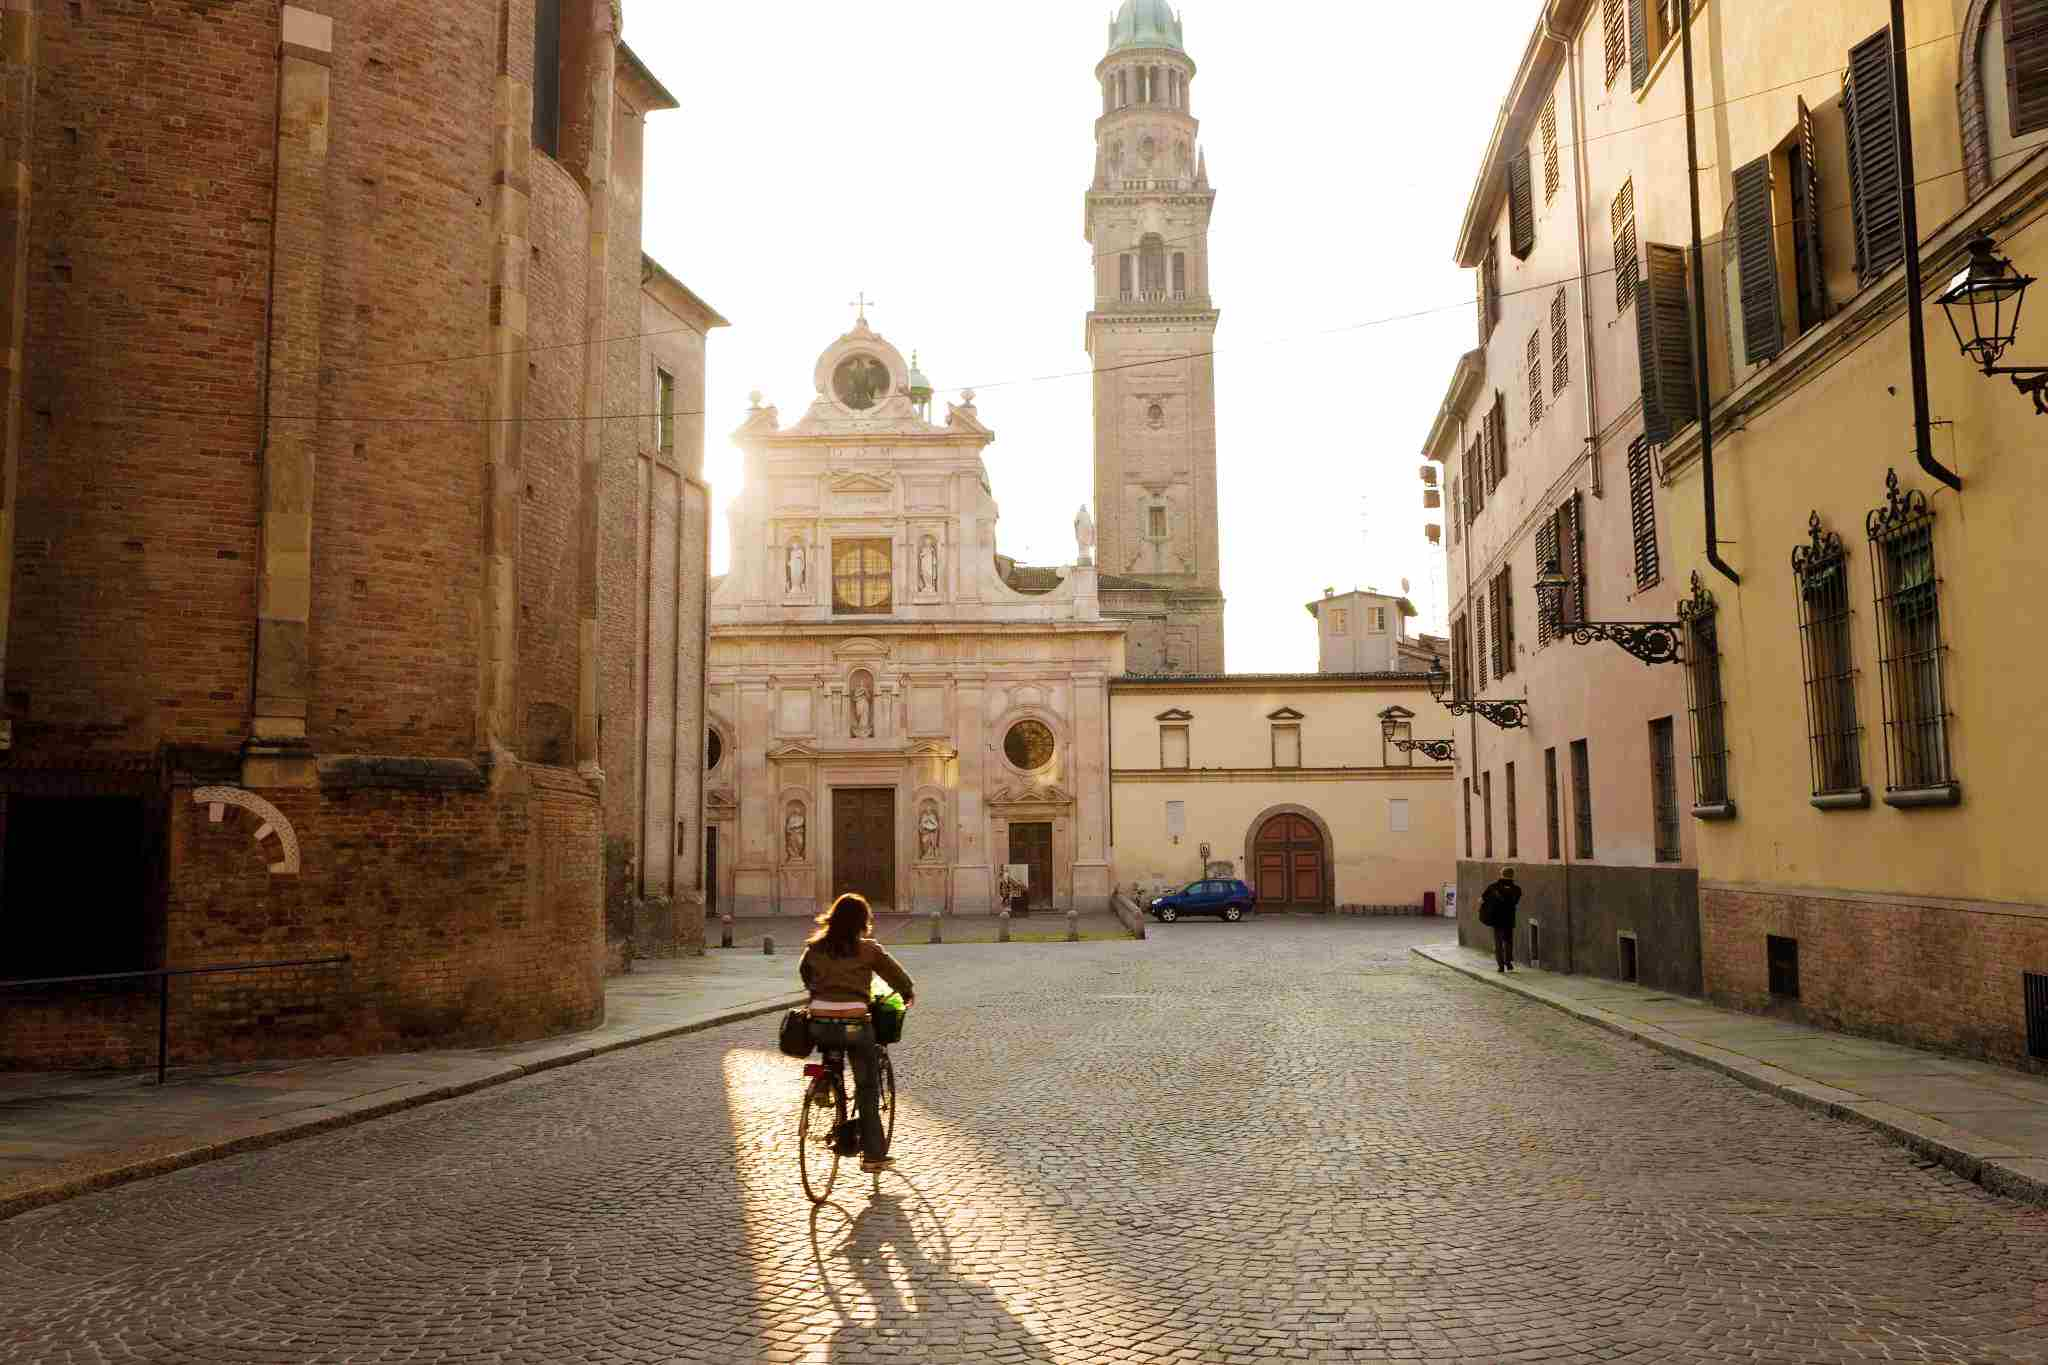 The Top 10 Cities You Should Visit in Italy